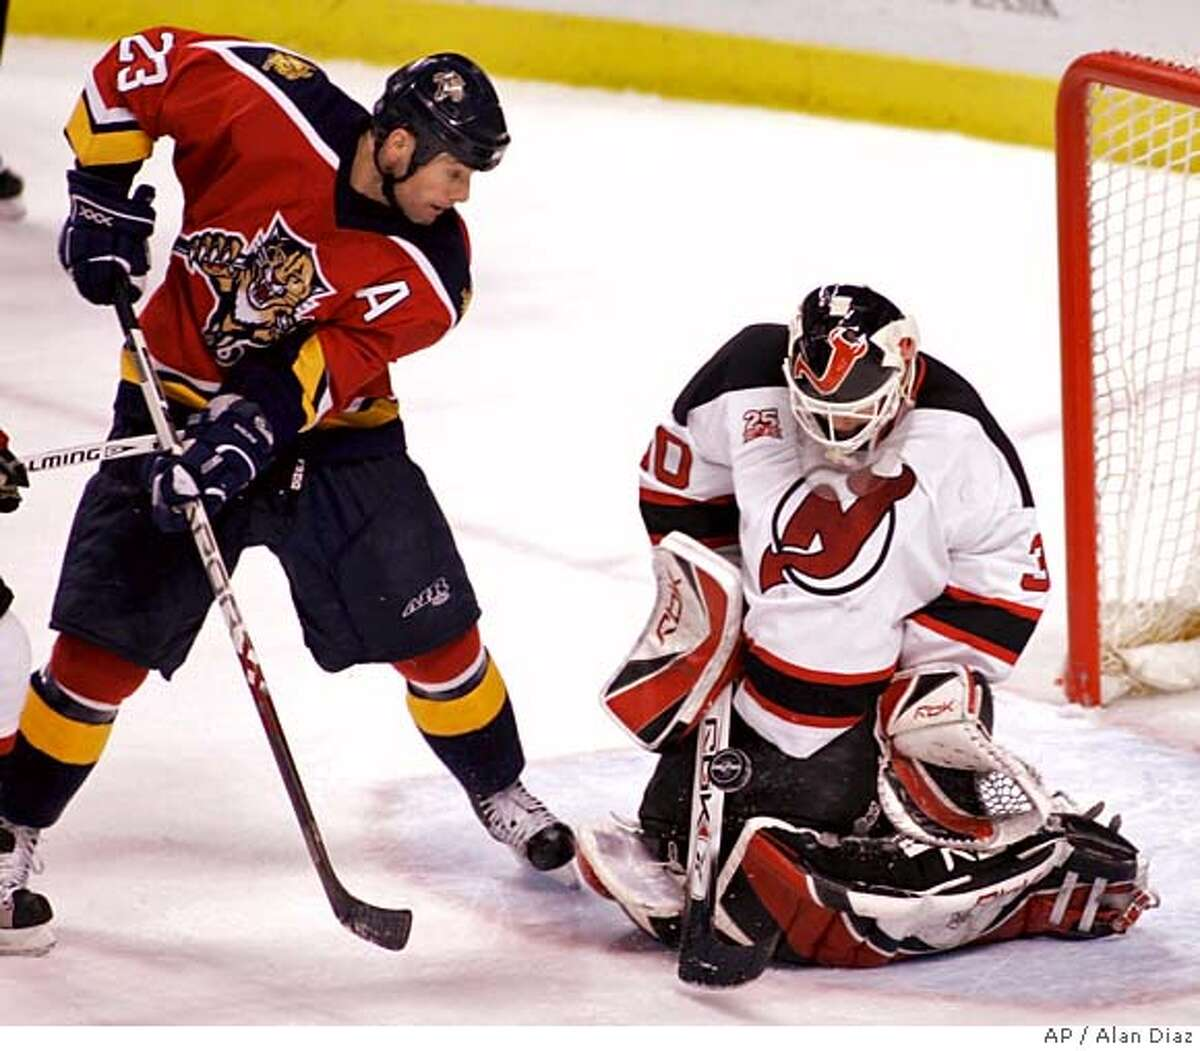 New Jersey Devils goalie Martin Brodeur, right, blocks a shot by Florida Panthers' Martin Gelinas (23) during the second period of an NHL hockey game in Sunrise, Fla., Saturday, Jan. 27, 2007. (AP Photo/Alan Diaz) EFE OUT